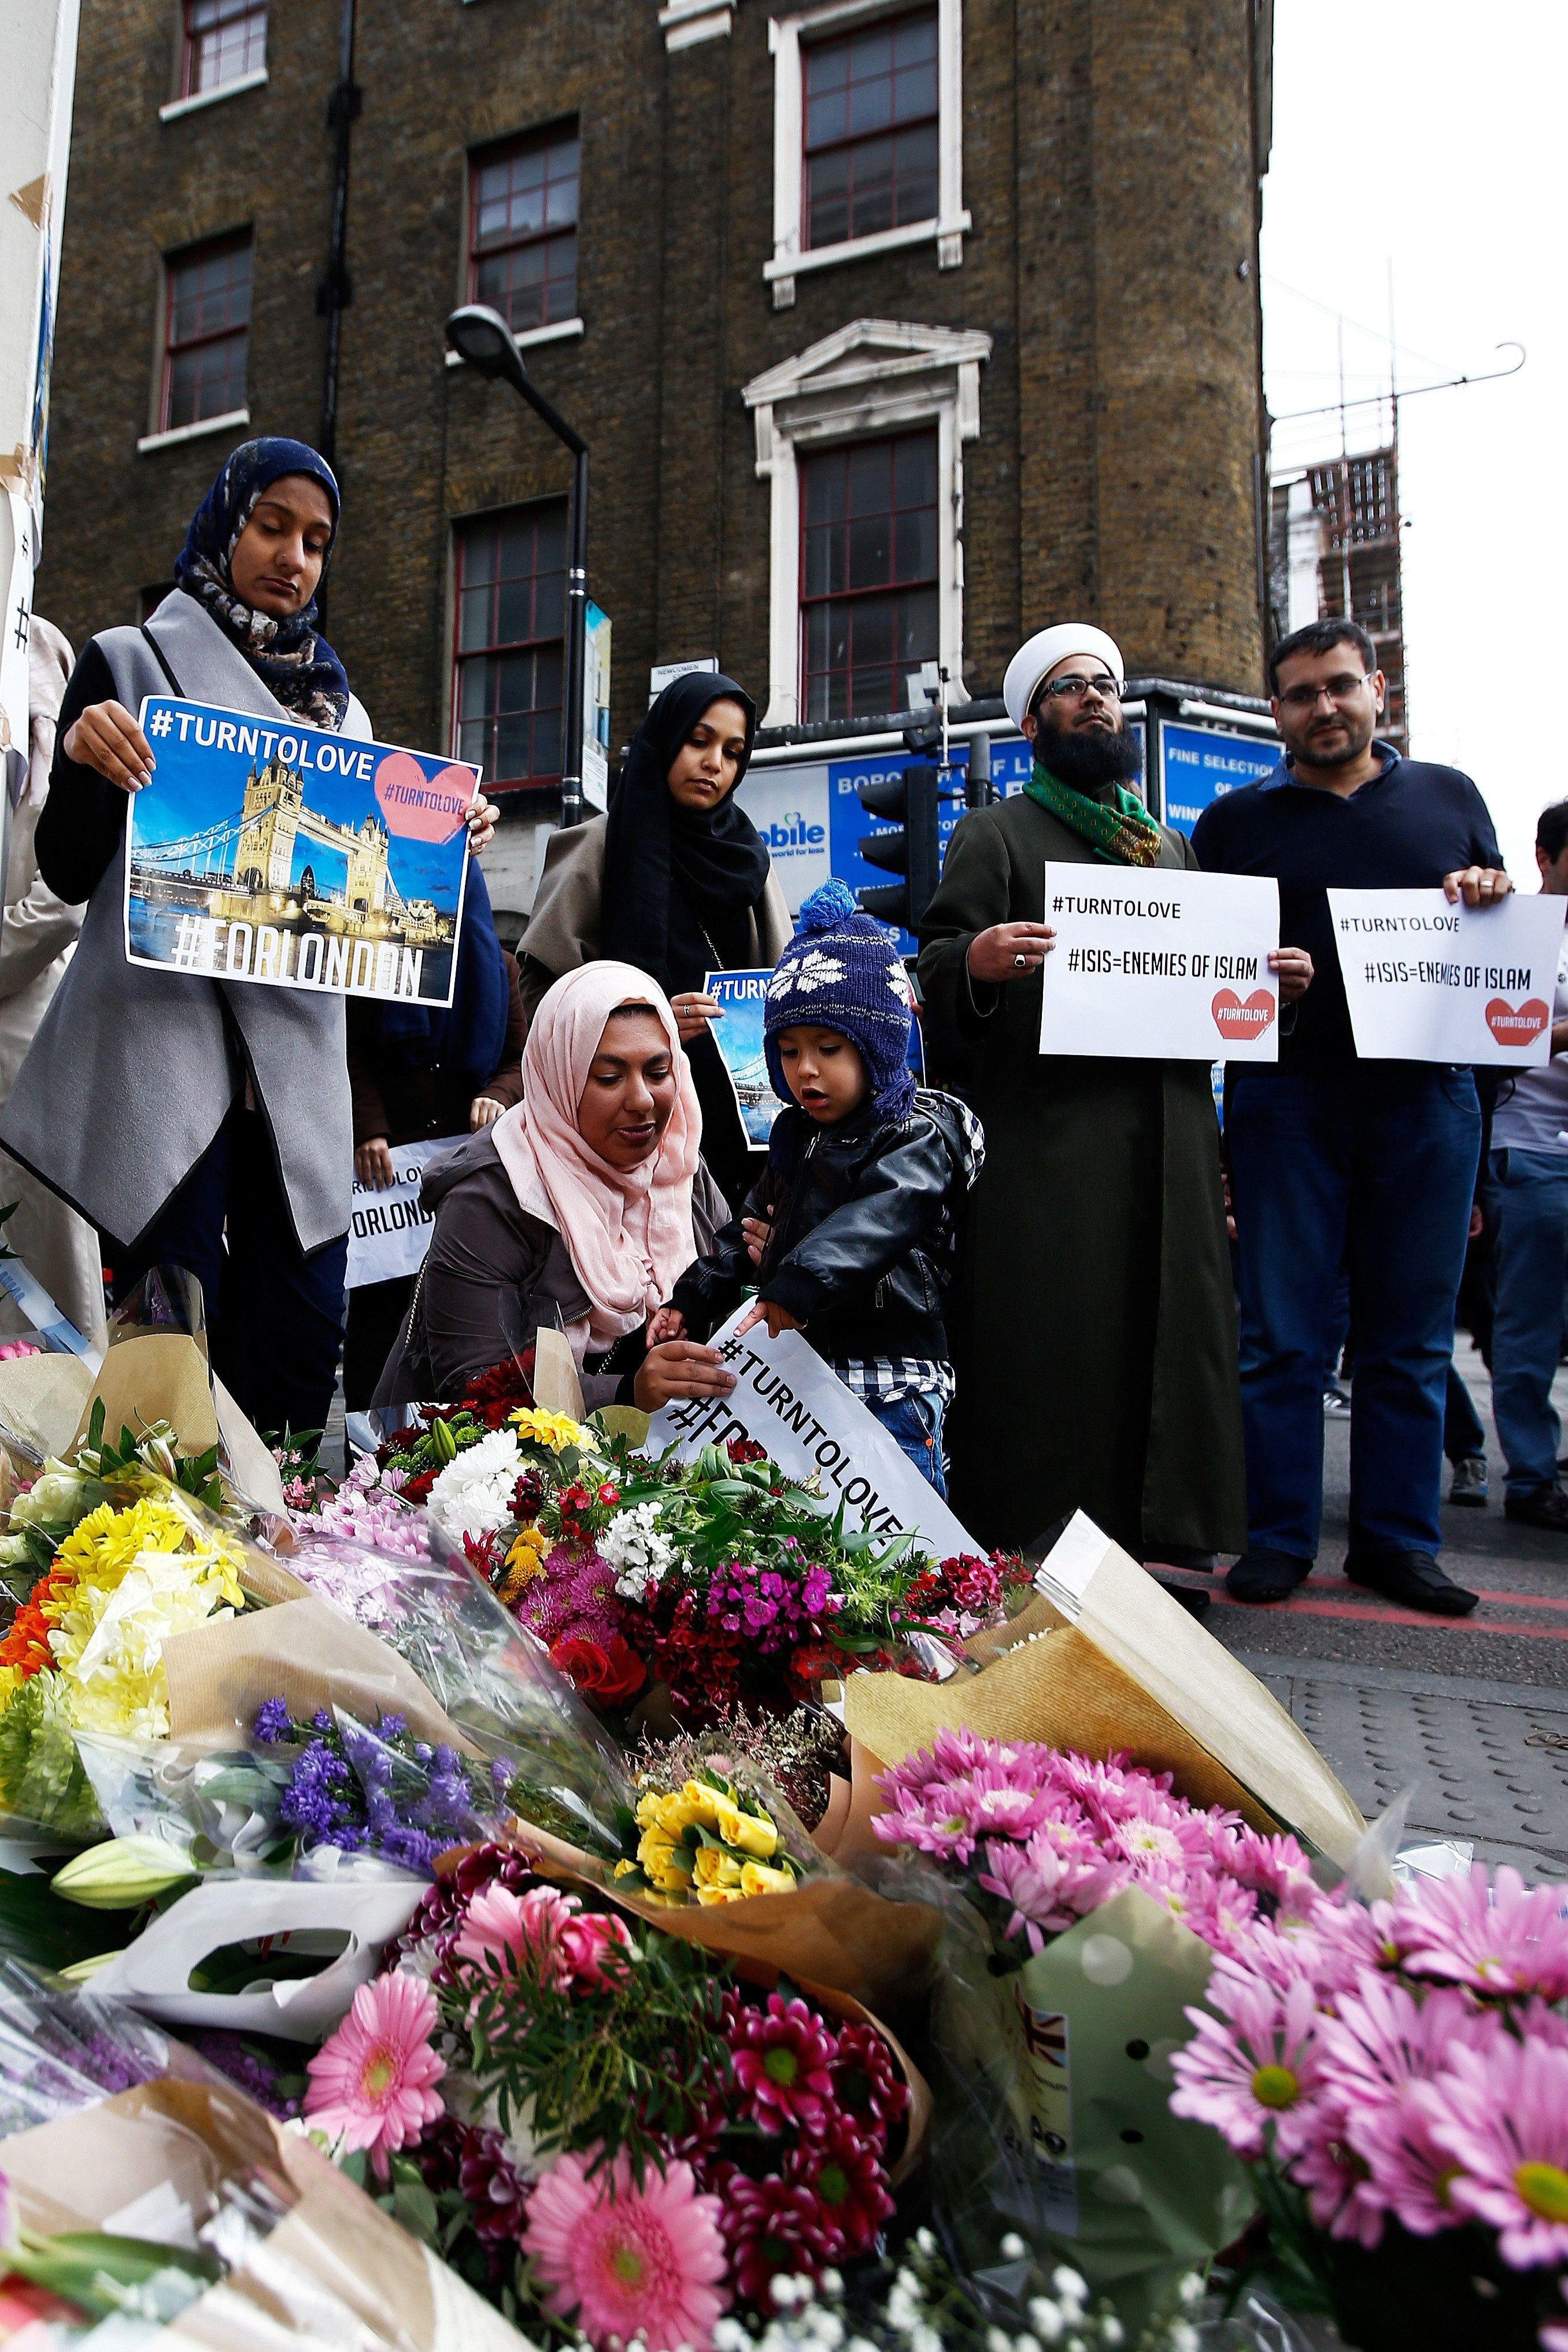 Muslims pray at a floral tribute near London Bridge, after attackers rammed a hired van into pedestrians on London Bridge and stabbed others nearby killing and injuring people, in London, Britain June 4, 2017. REUTERS/Peter Nicholls